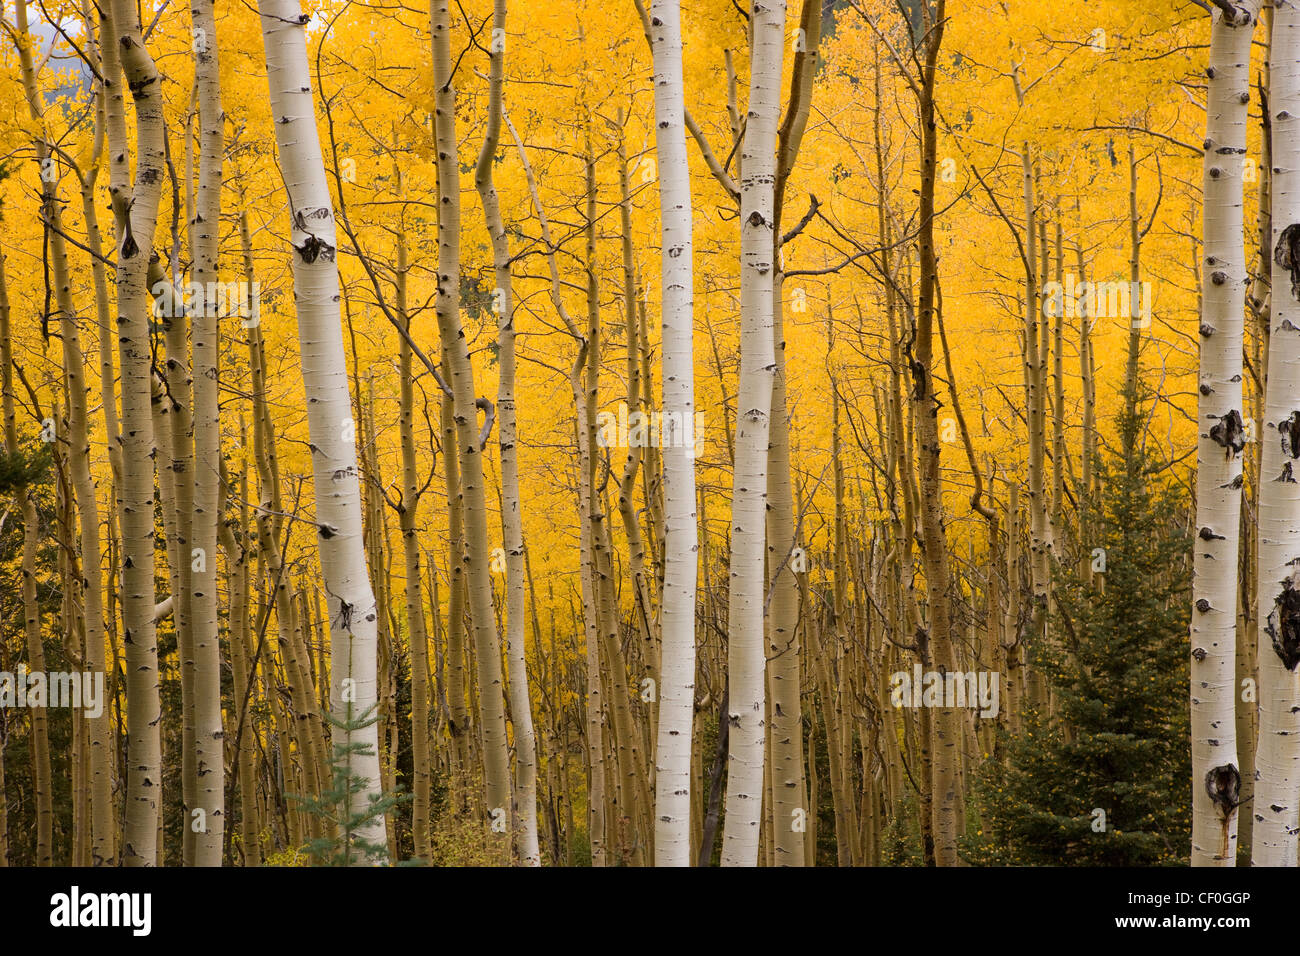 Leves changing color, bright yellow, white bark of aspen trees ...